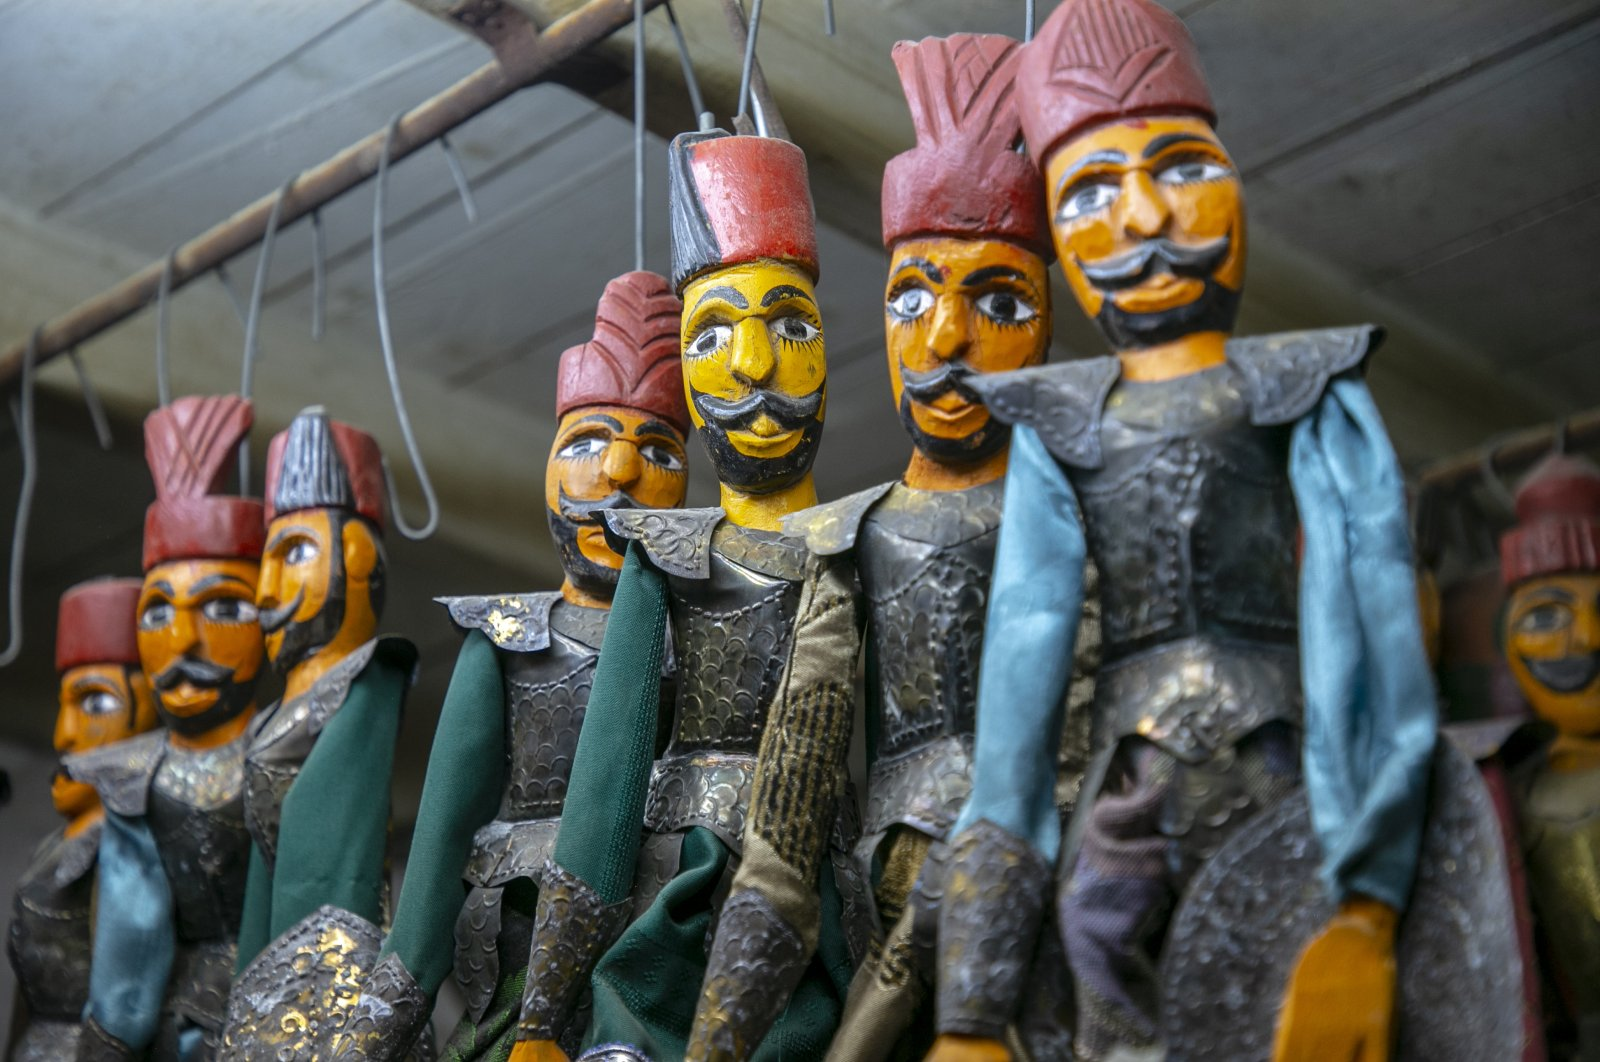 Soma janissary puppets of the Tunisian brothers are seen in their workshop in the capital Tunis, Tunisia, Oct. 10, 2020. (AA Photo)